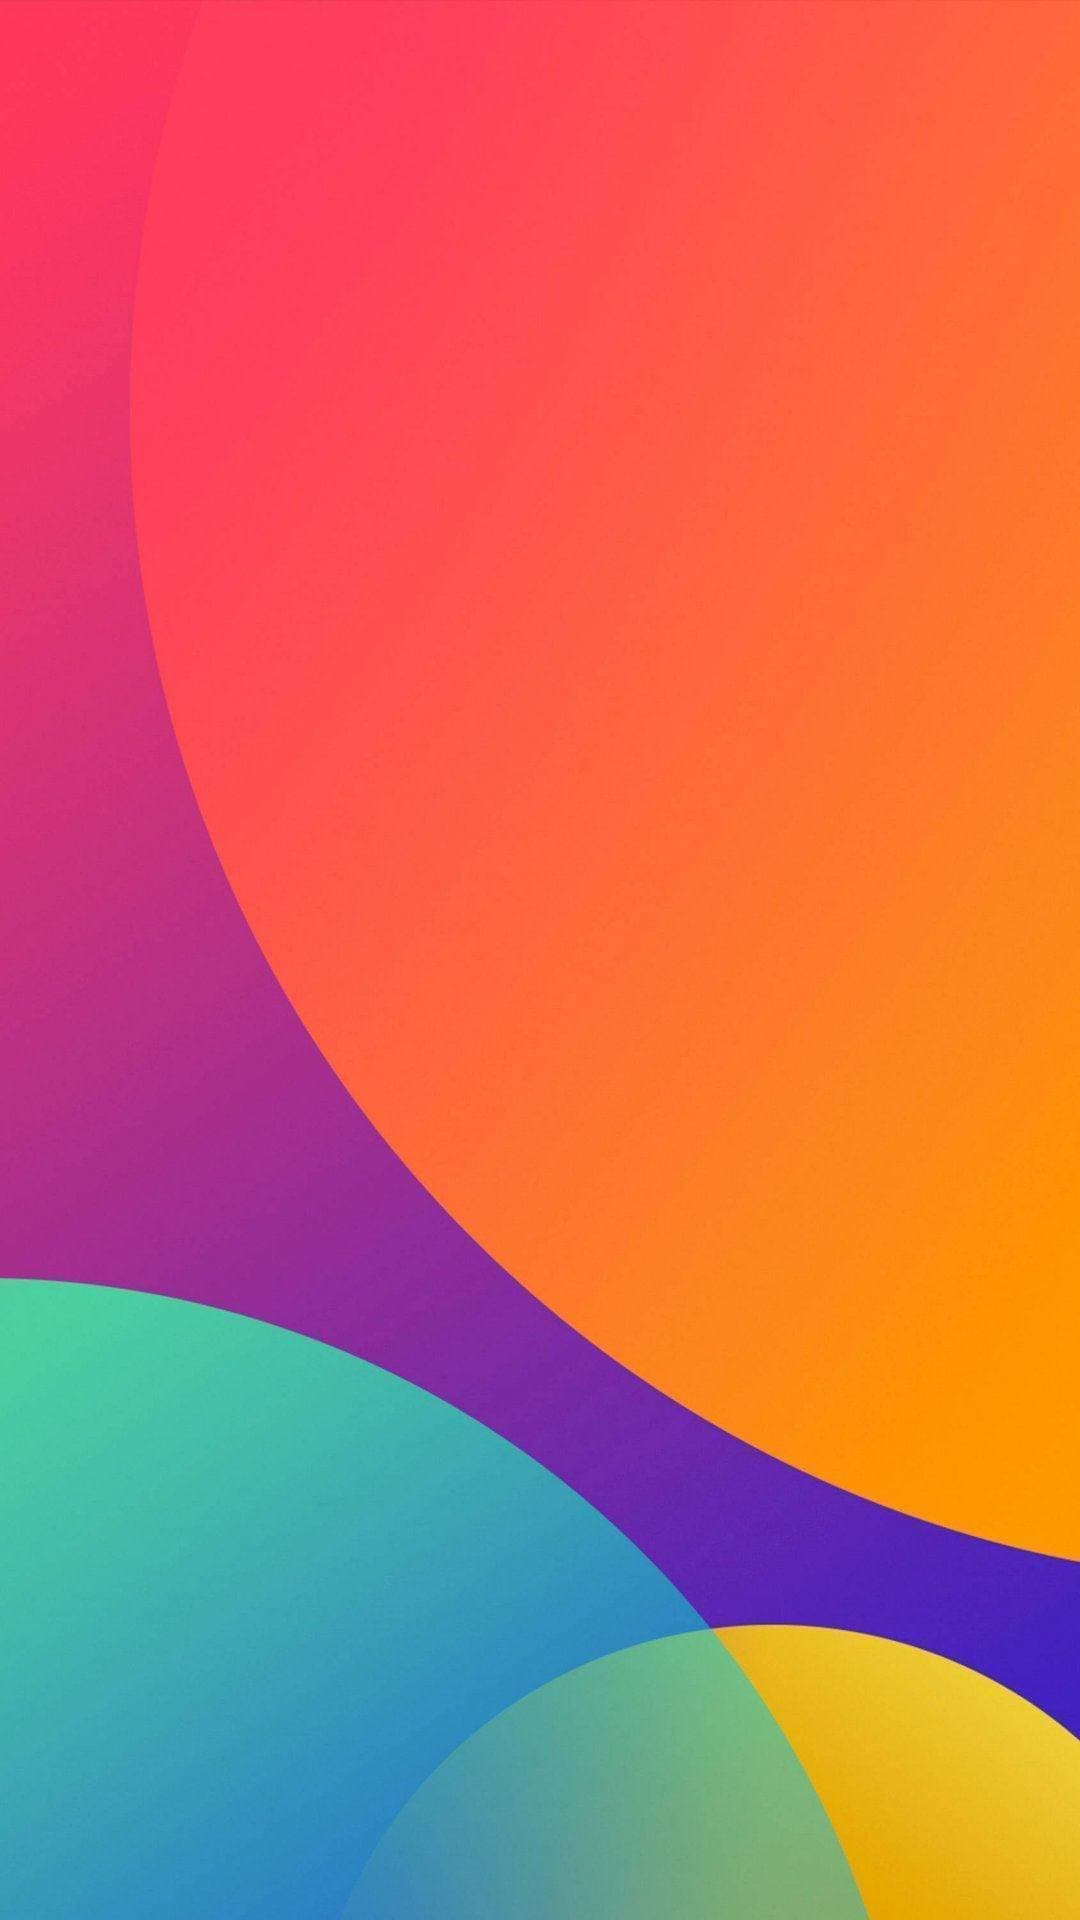 Flyme OS 6 Wallpapers 4